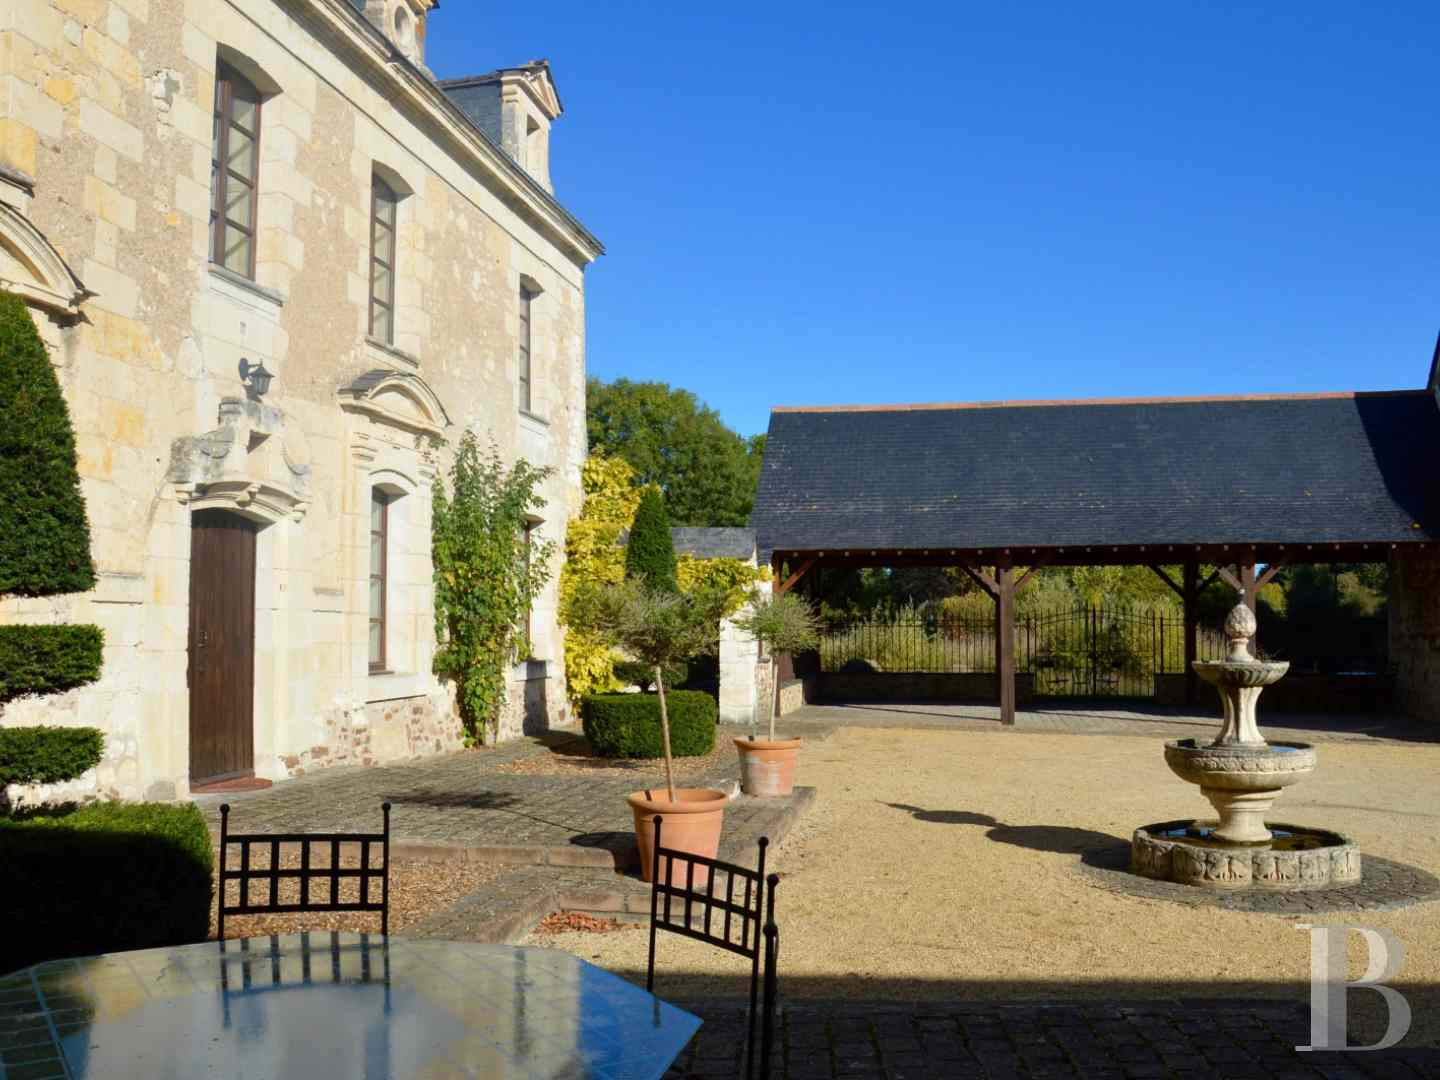 France mansions for sale pays de loire manor house - 4 zoom